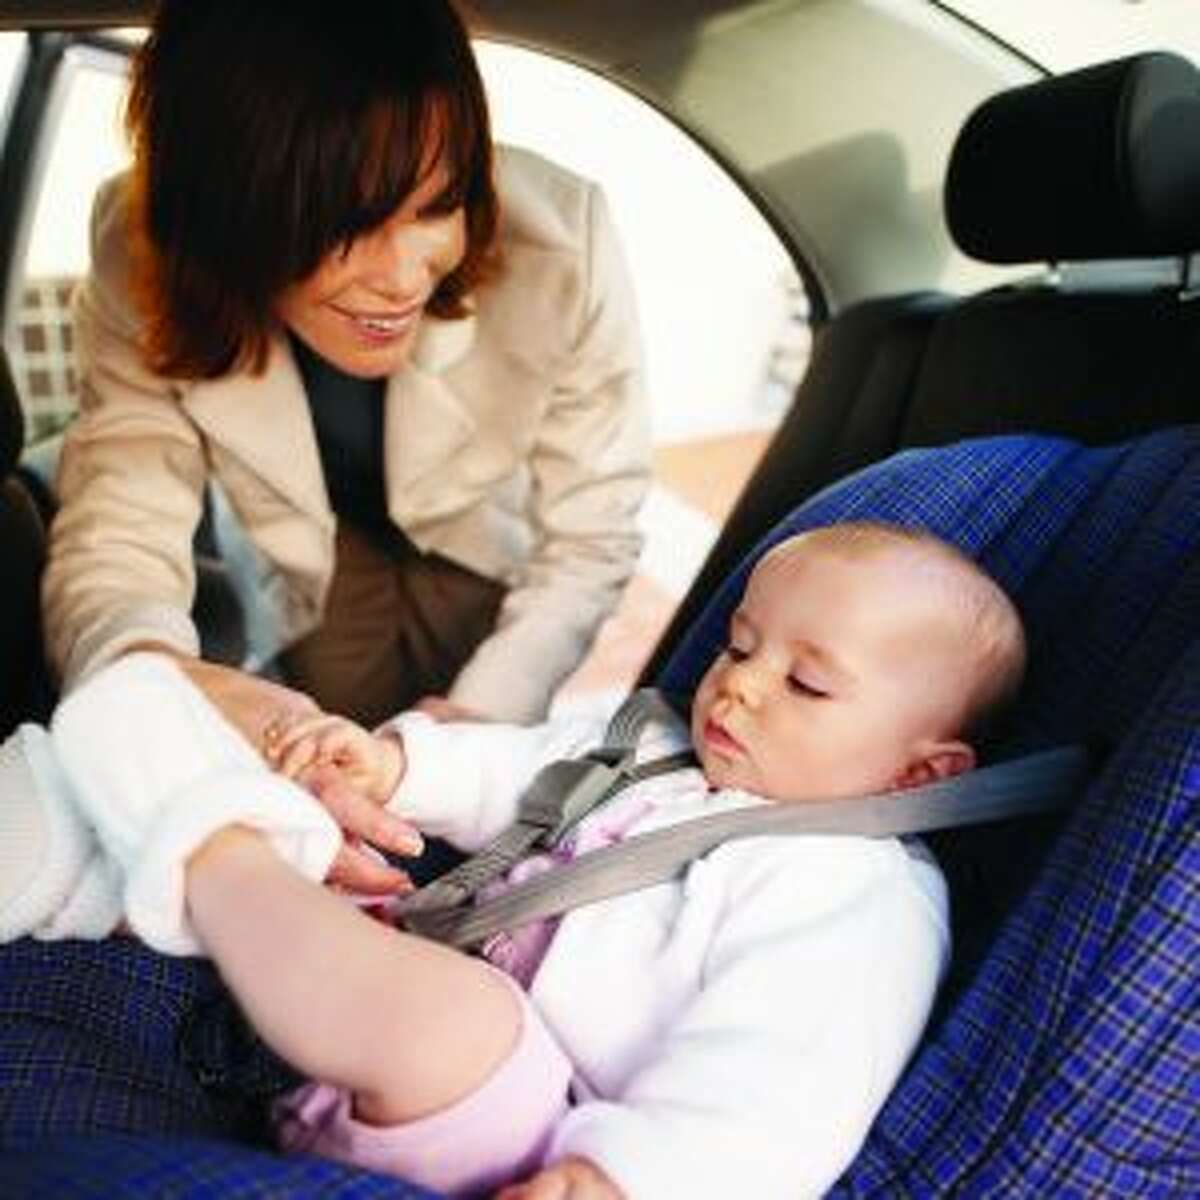 A woman buckles a child into a car seat in a vehicle. It's not only infants who are required to have a proper seat; a 2008 state law requires children in Michigan to be properly buckled in a car seat or booster seat until they are 8 years old or 4 feet 9 inches tall. (Courtesy photo)